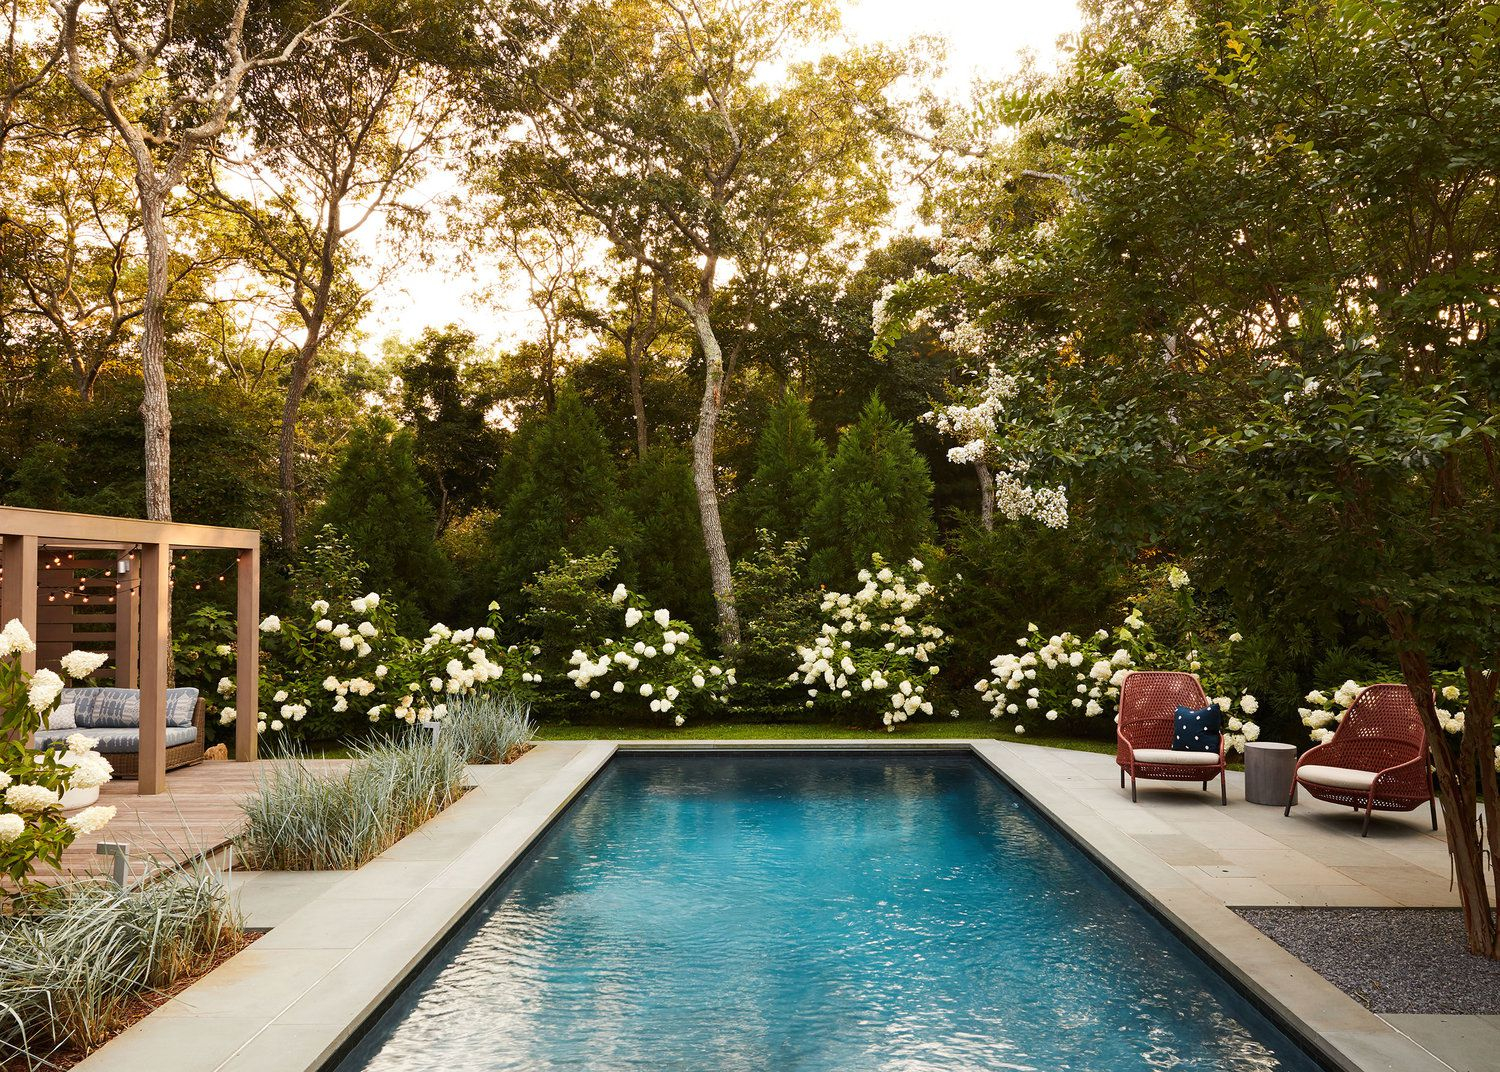 37 Breathtaking Backyard Ideas Outdoor Space Design Inspiration for 12 Smart Concepts of How to Upgrade Backyard Landscape Images